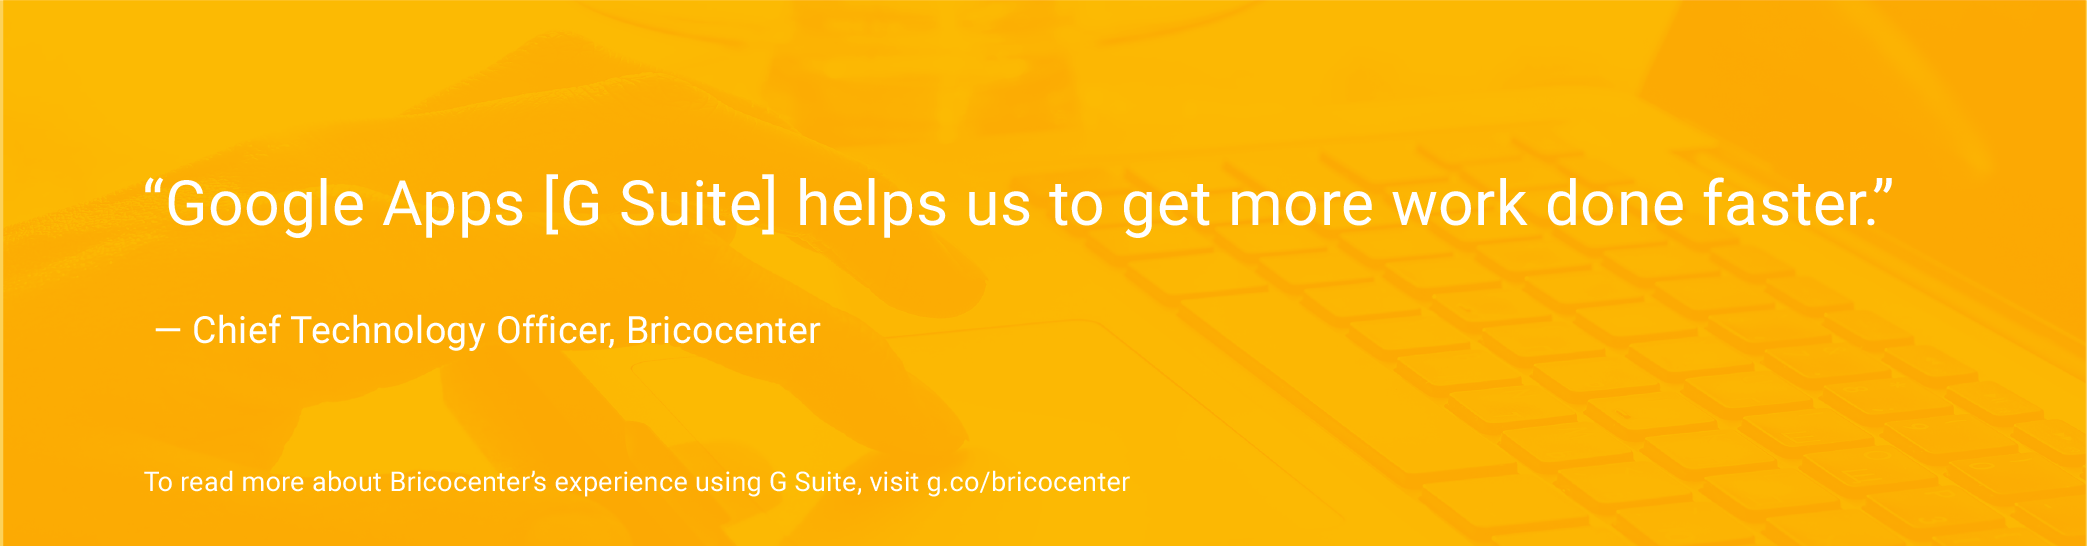 Quote image from Bricocenter's chief technology officer